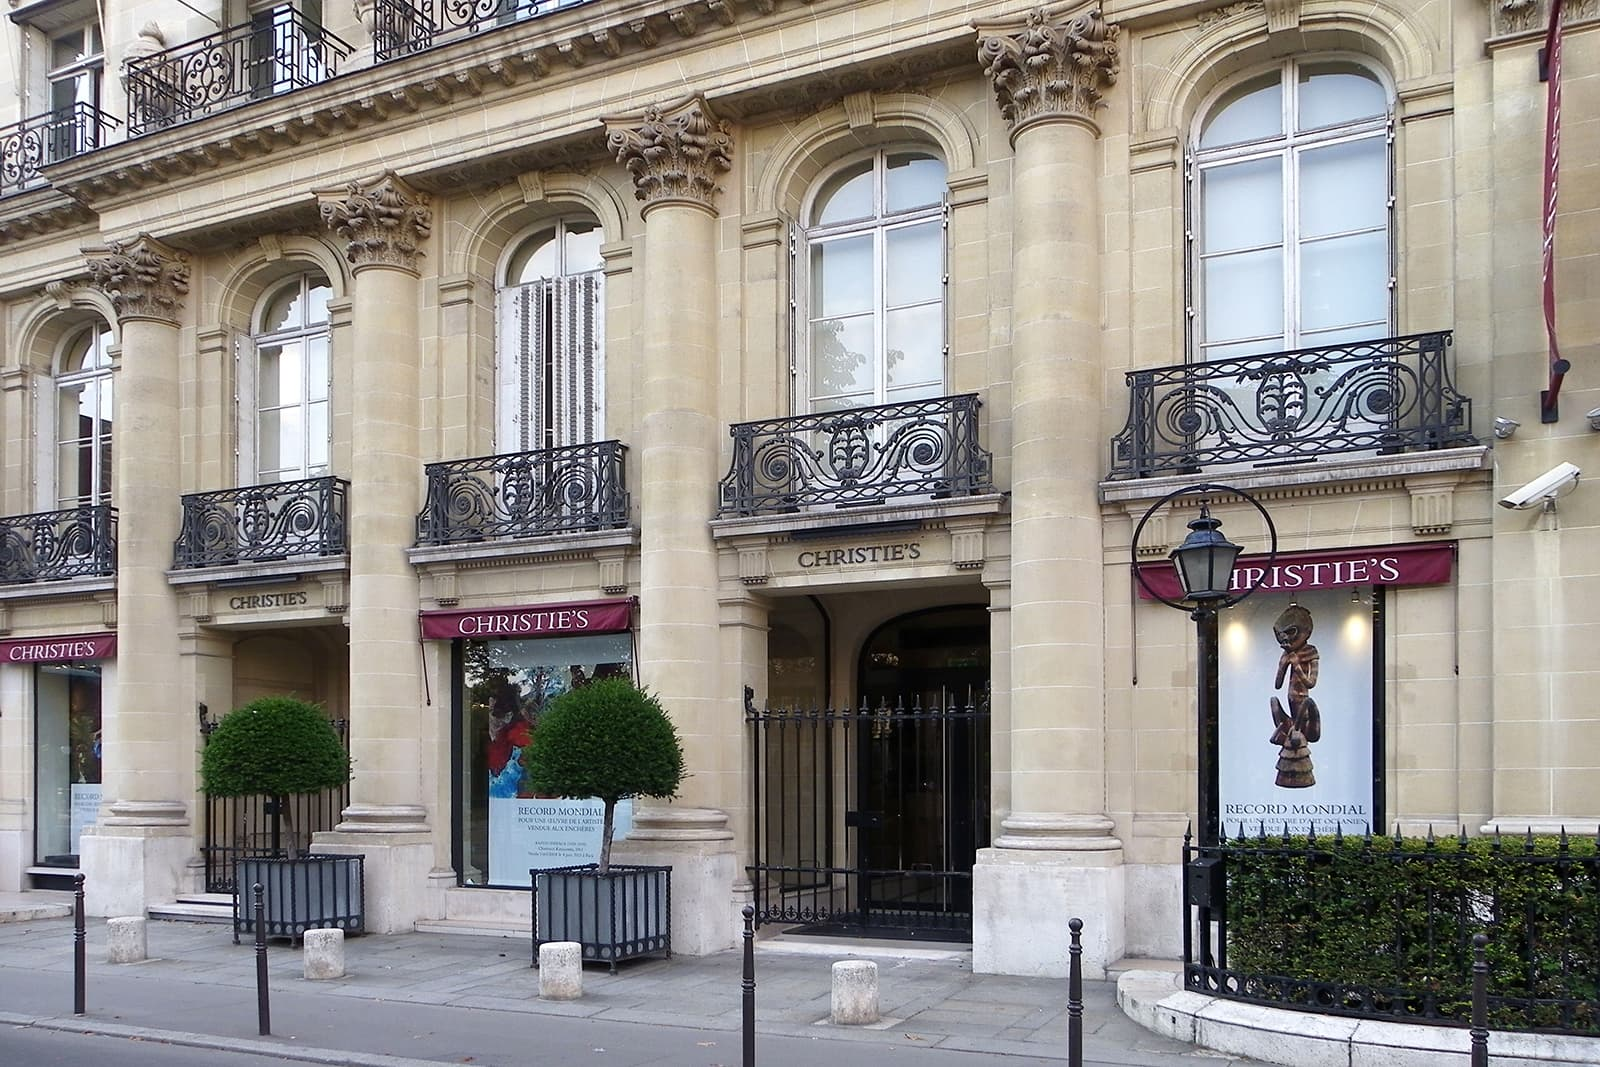 Christie's Paris, location of the Vanity Affair exhibition from 11th to 16th September